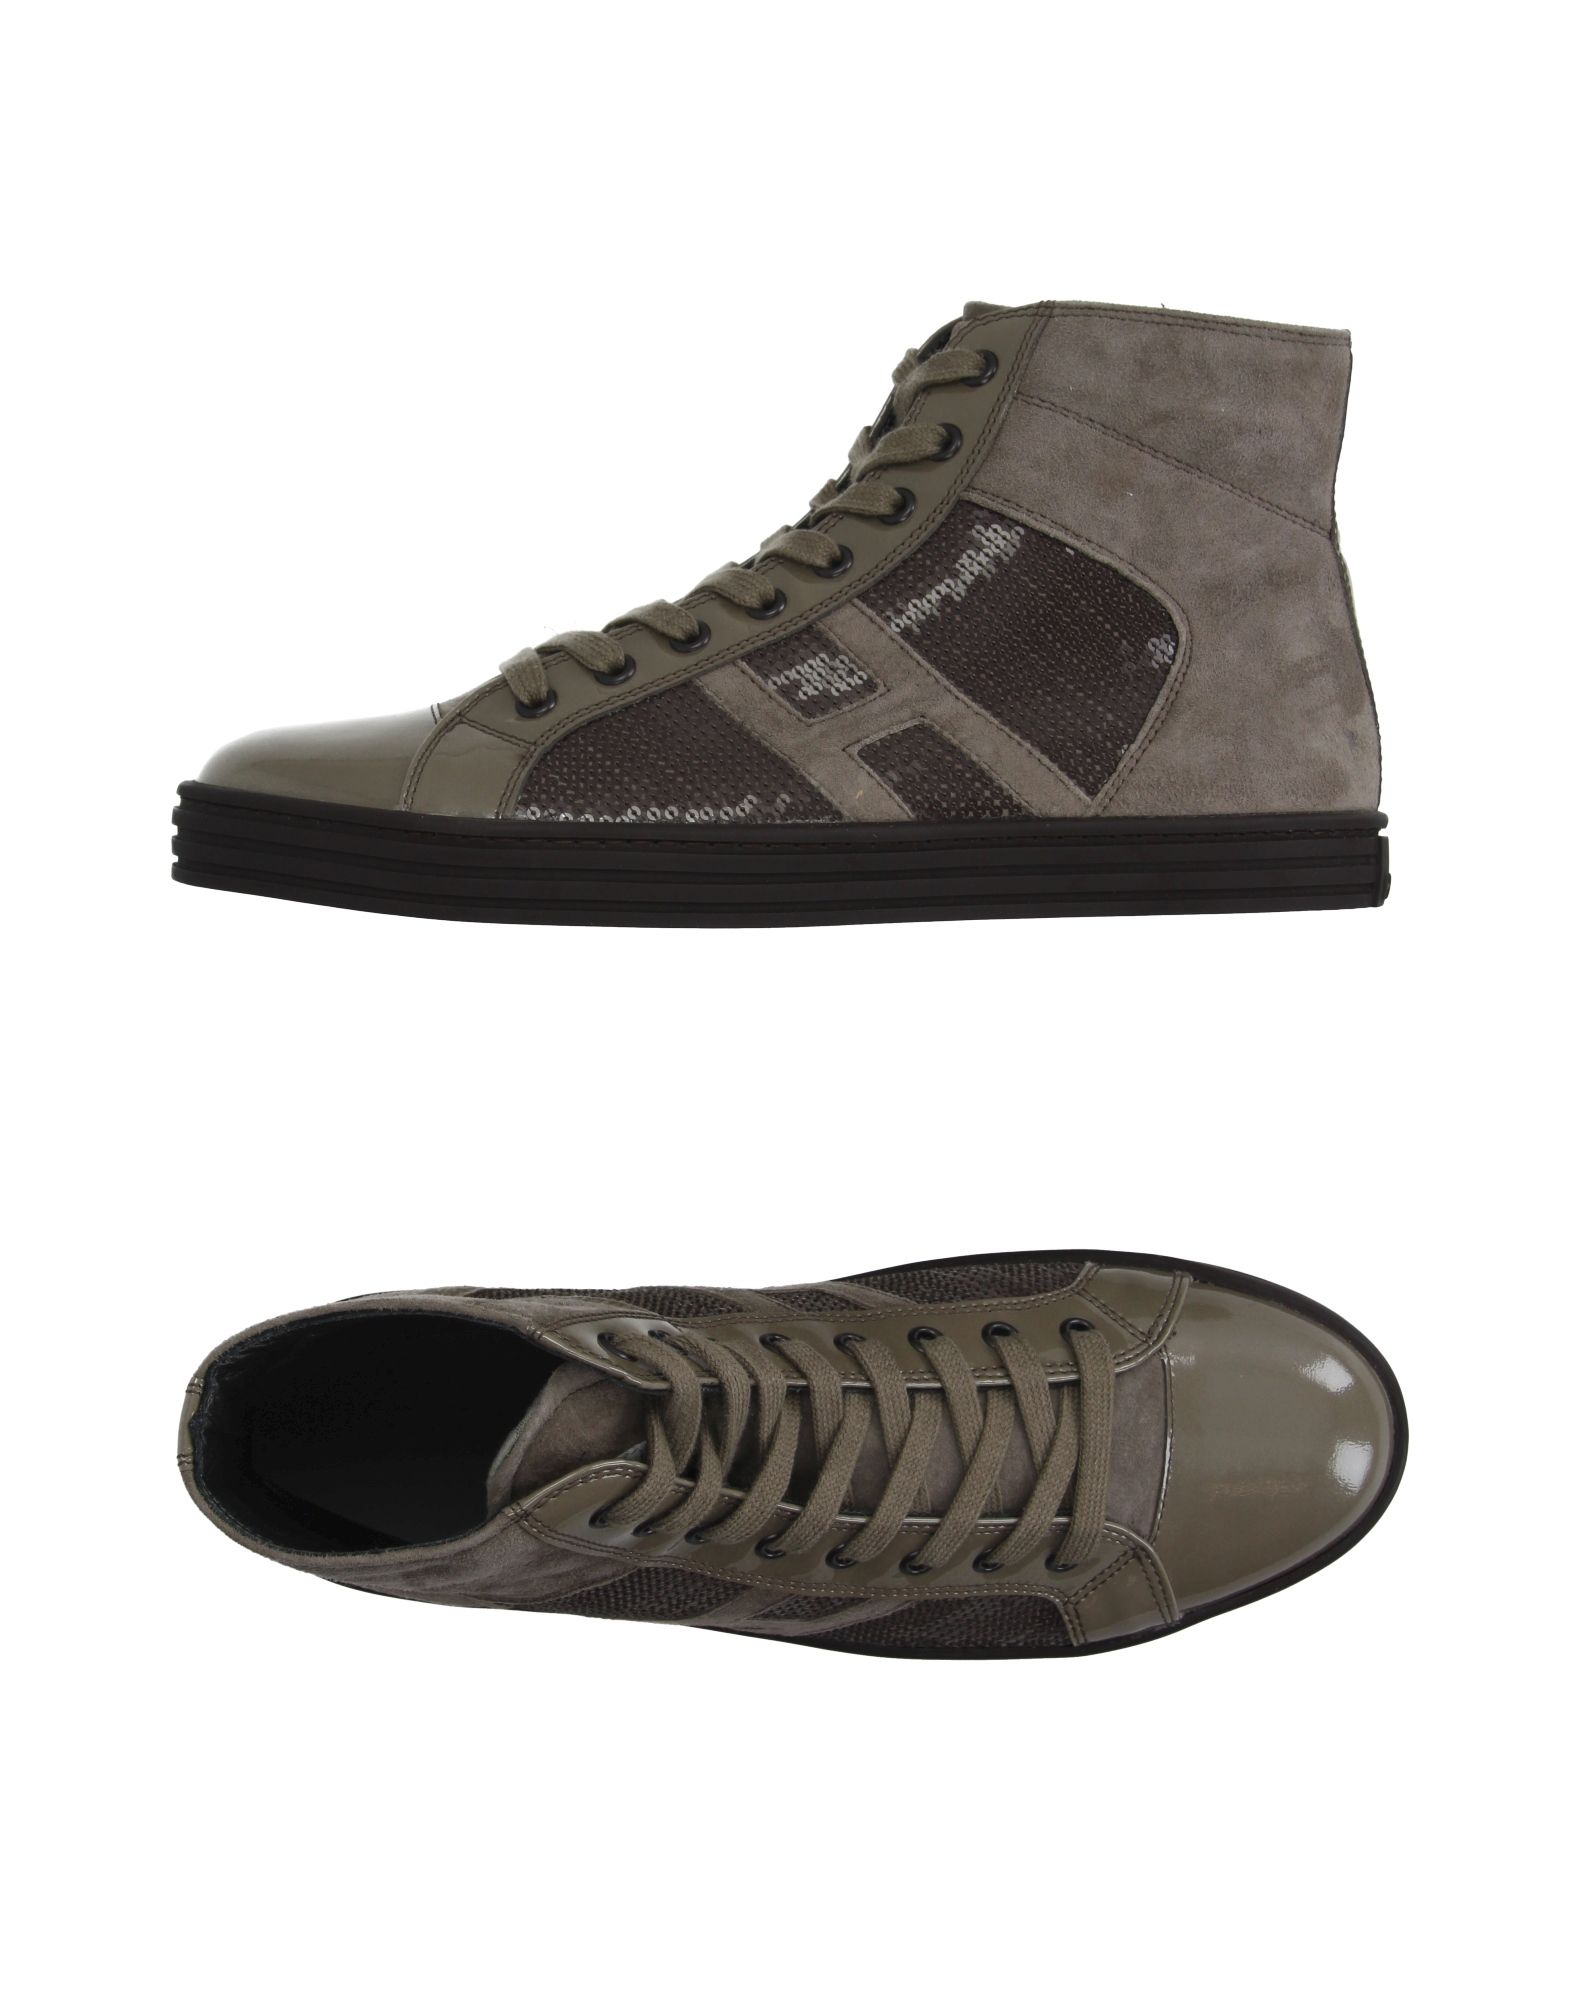 Stilvolle Sneakers billige Schuhe Hogan Rebel Sneakers Stilvolle Damen  11023832JT e91e52